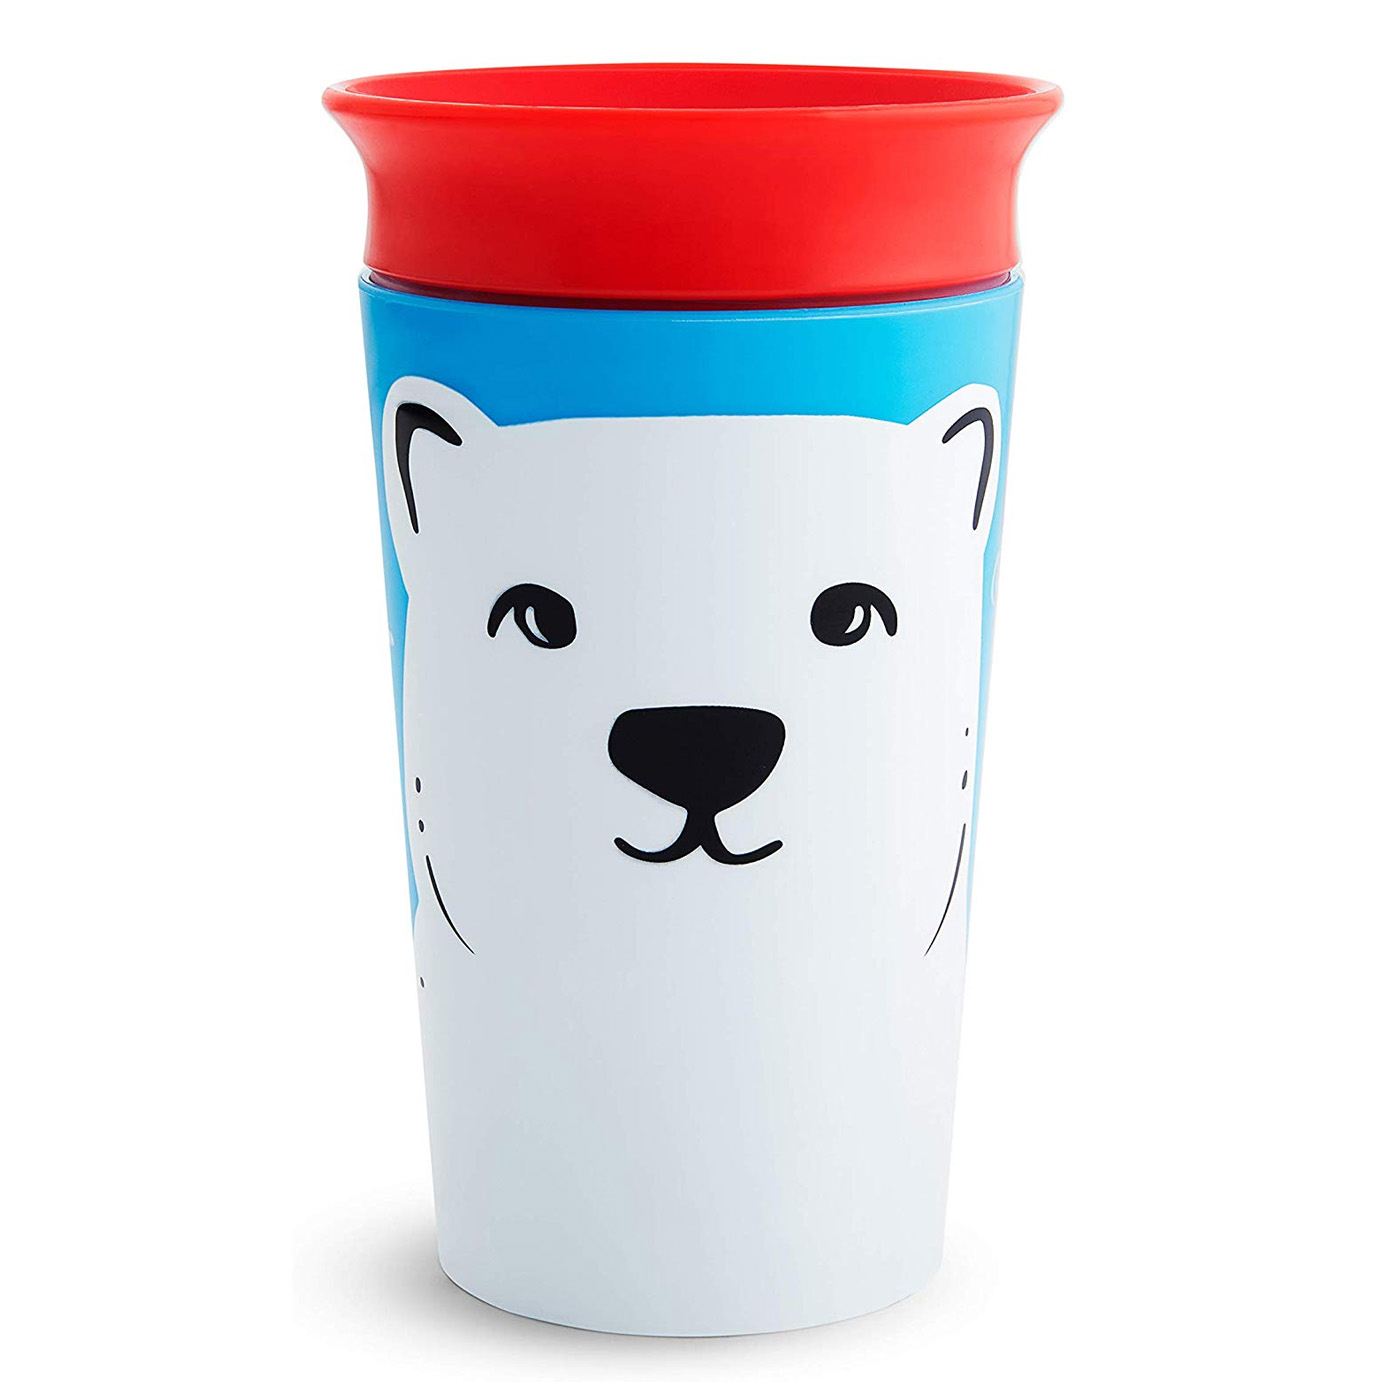 Tasse miracle 360 12M+ Ours polaire  de Munchkin